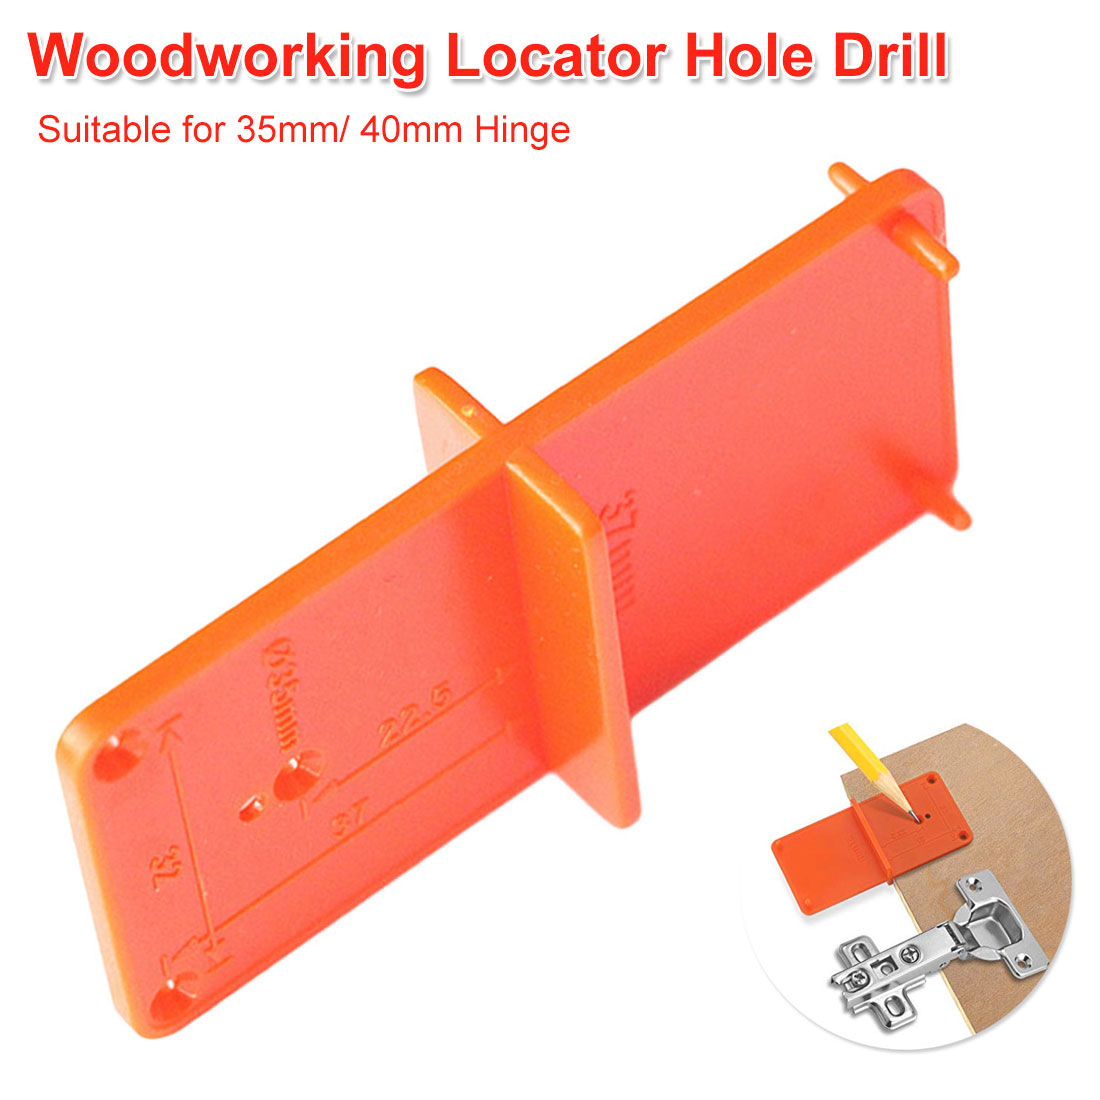 1PC 35mm/ 40mm Hinge Hole Drilling Guide Locator Hole Opener Template Door Cabinets DIY Tool For Woodworking Tool